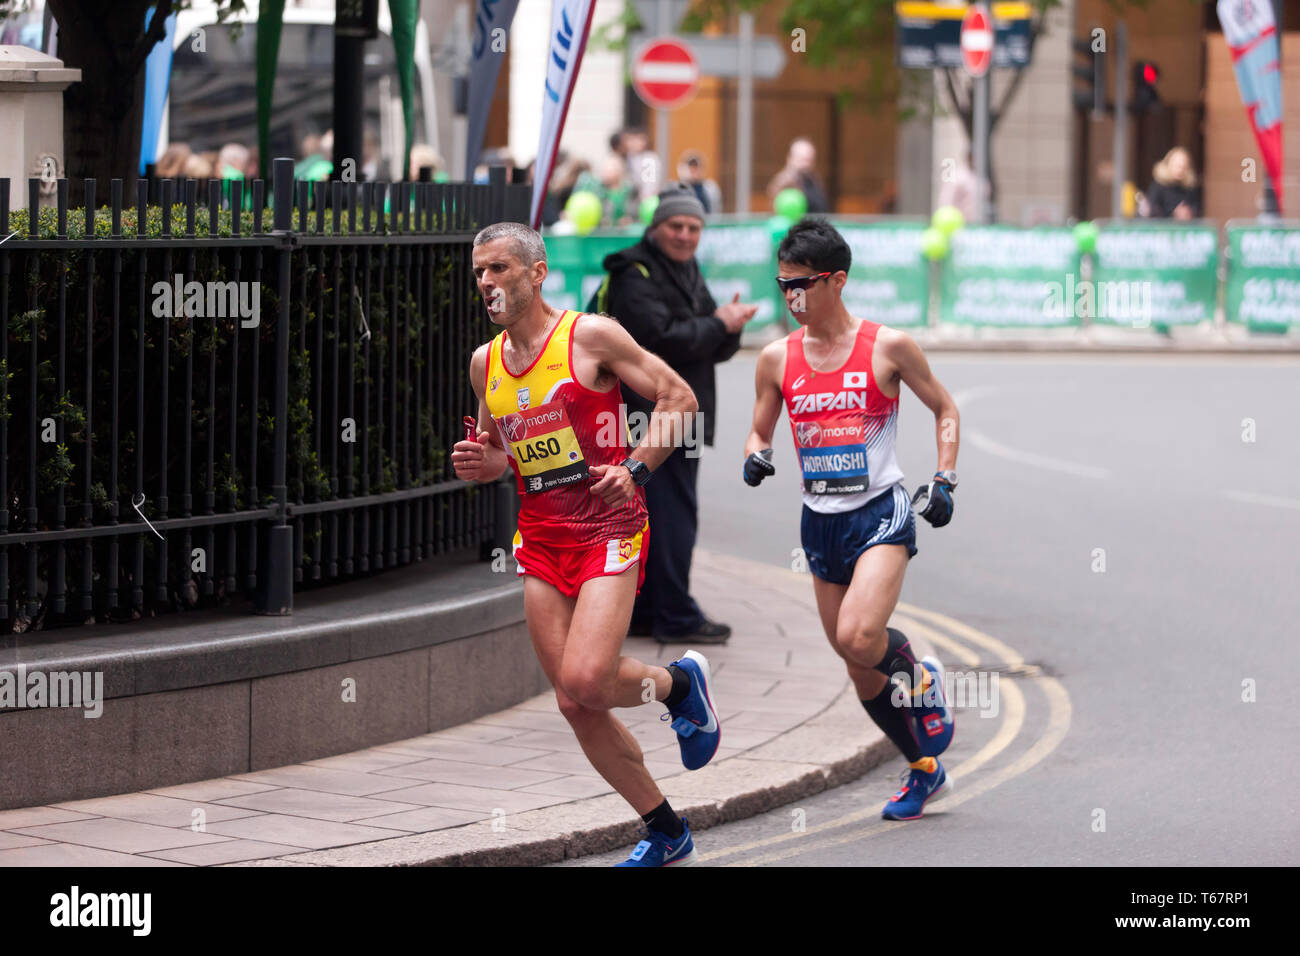 Alberto Suarez Laso (ESP),  and Tadashi Horikoshi (JPN), Competing in the 2019 London Marathon.  They went on to finish 3rd and 4th in times of 02:25:50 and 02:25:56 respectively (2nd and 3rd in the T11/12 Category). Stock Photo